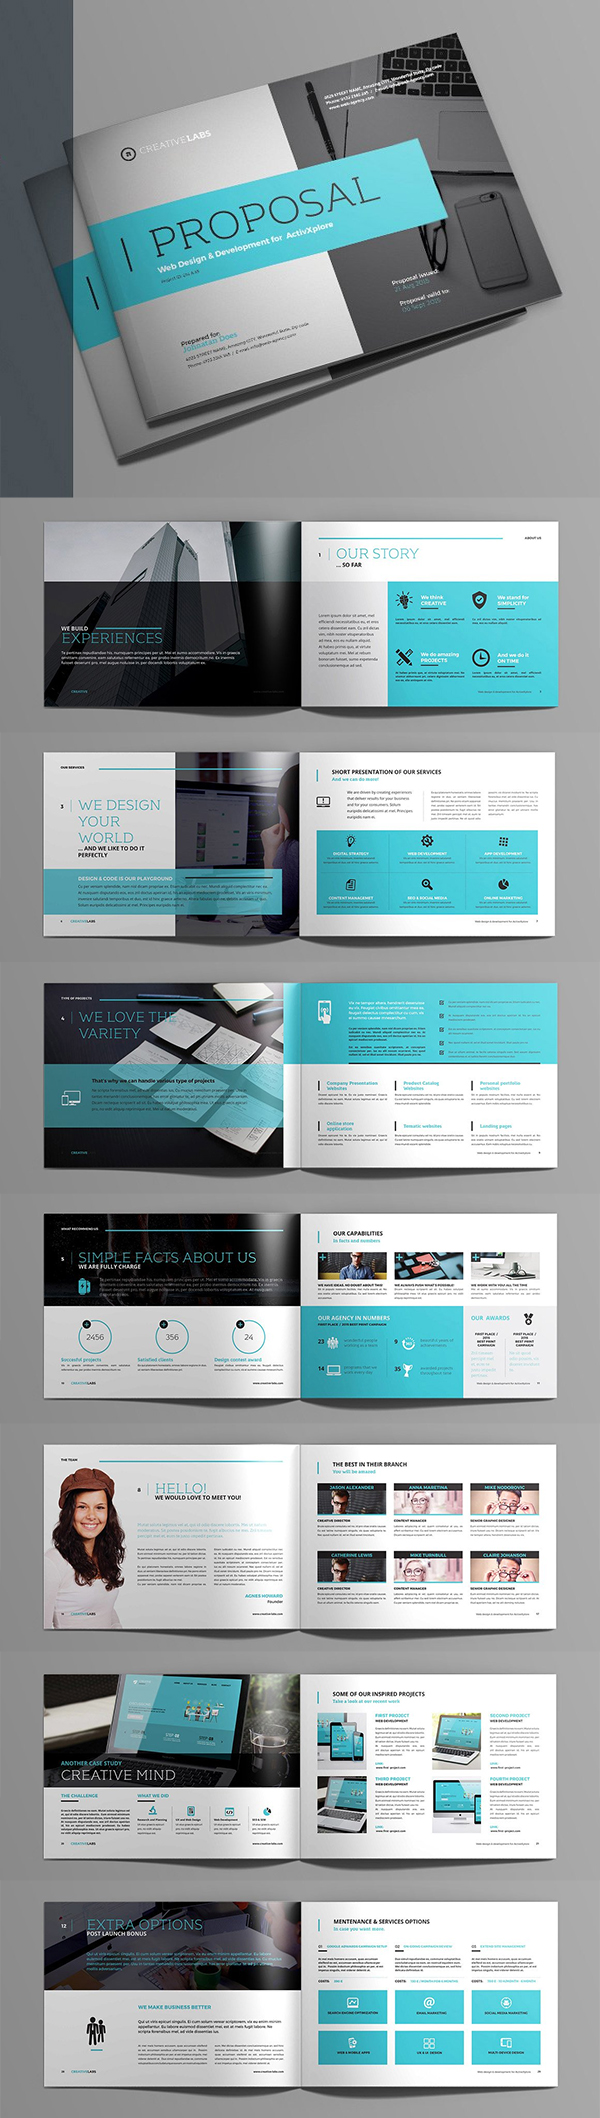 Professional Business Proposal Templates Design - 11